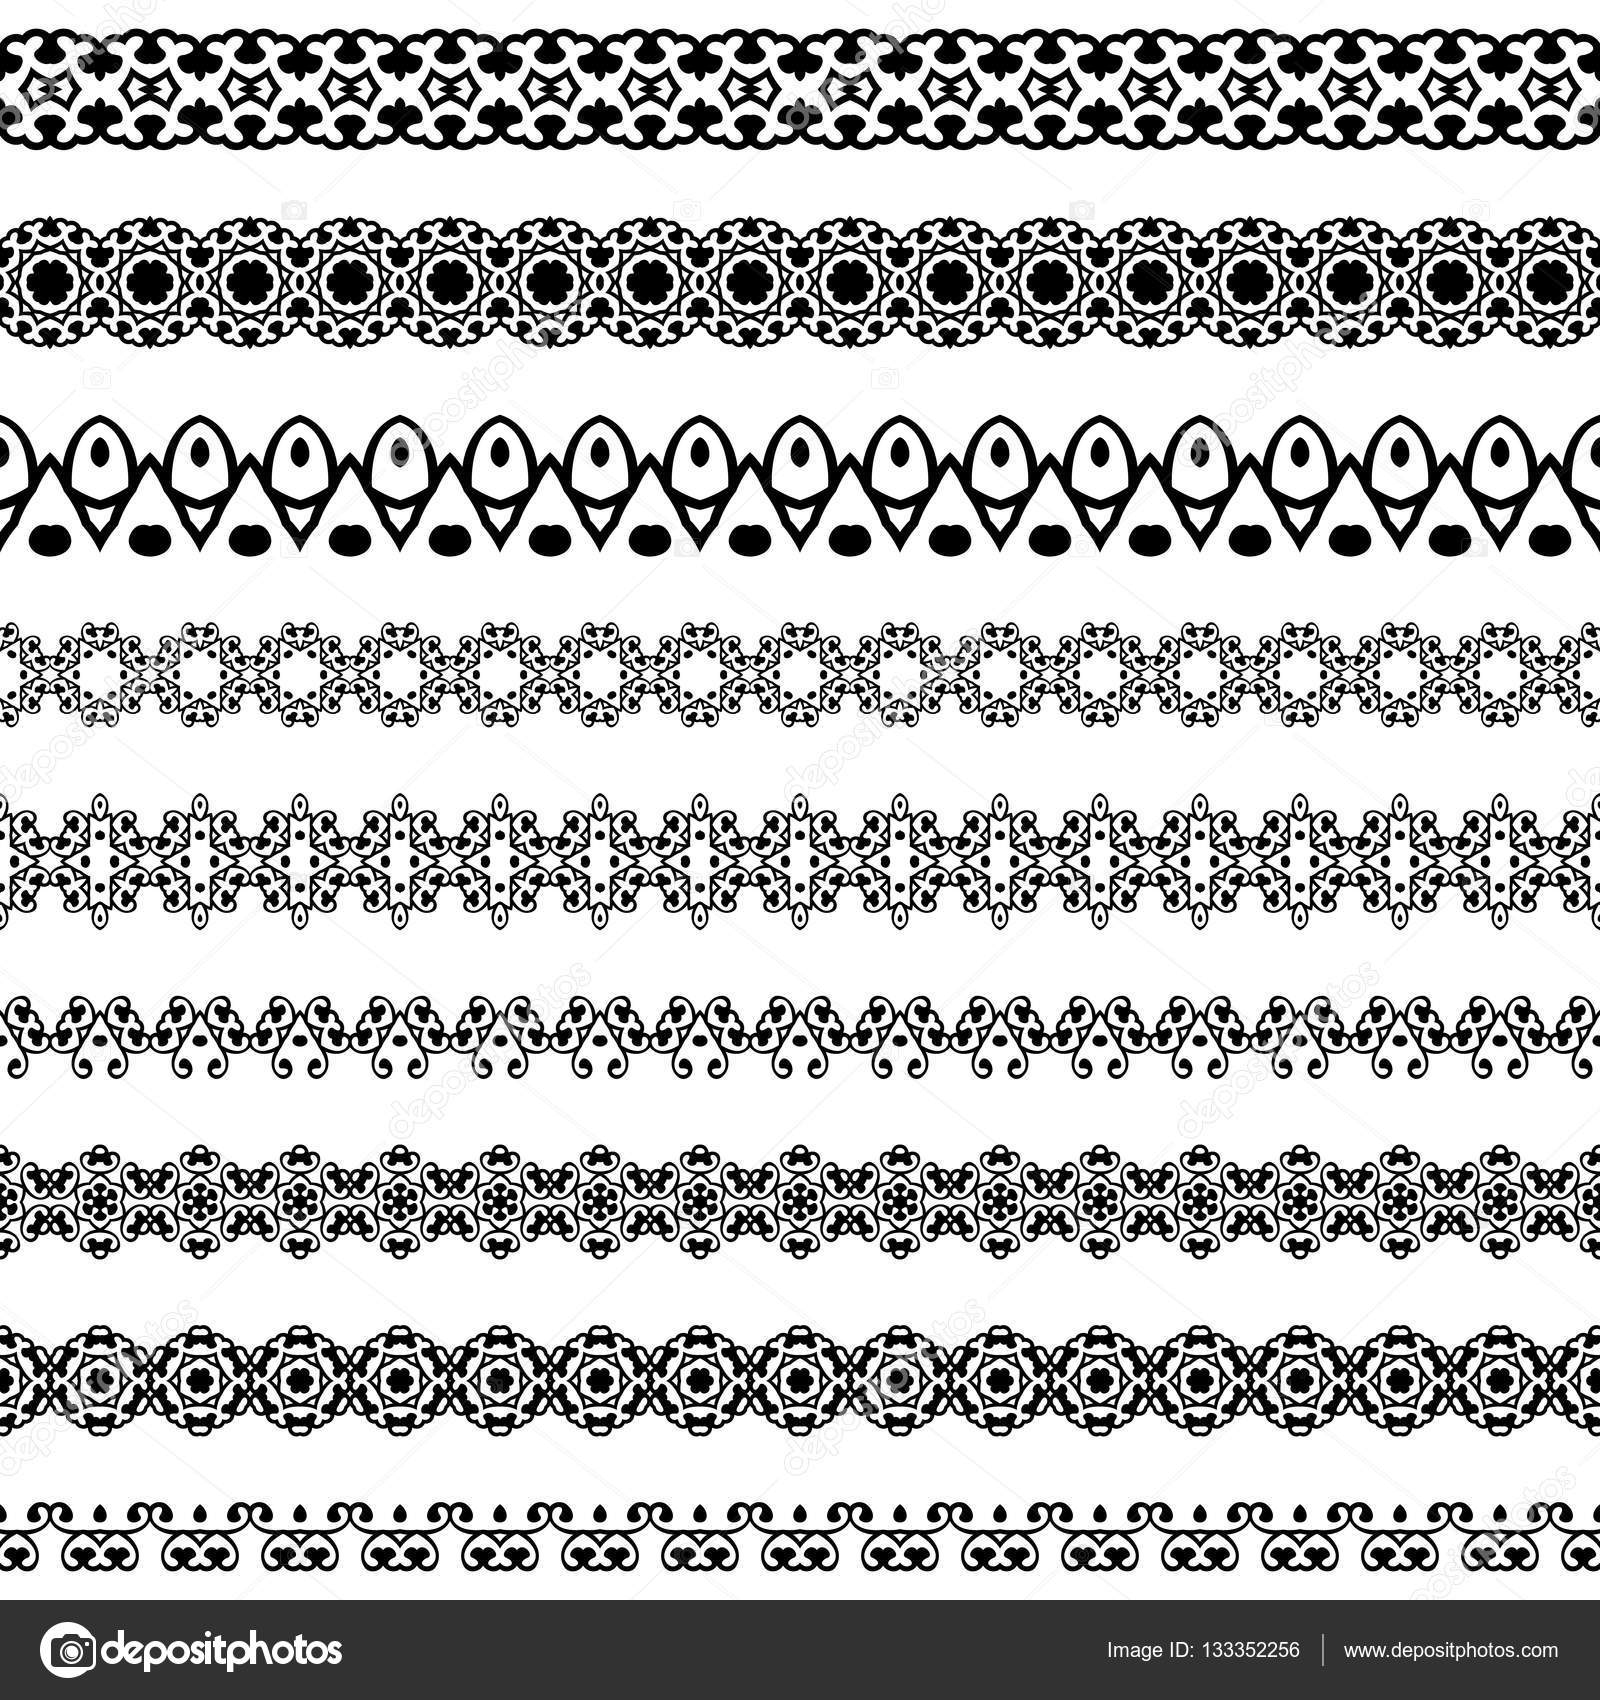 Set Line Borders With Patterns And Design Elements Vintage Vector Illustration For Fashion Industry And Not Only Stock Vector C Krahovnet 133352256